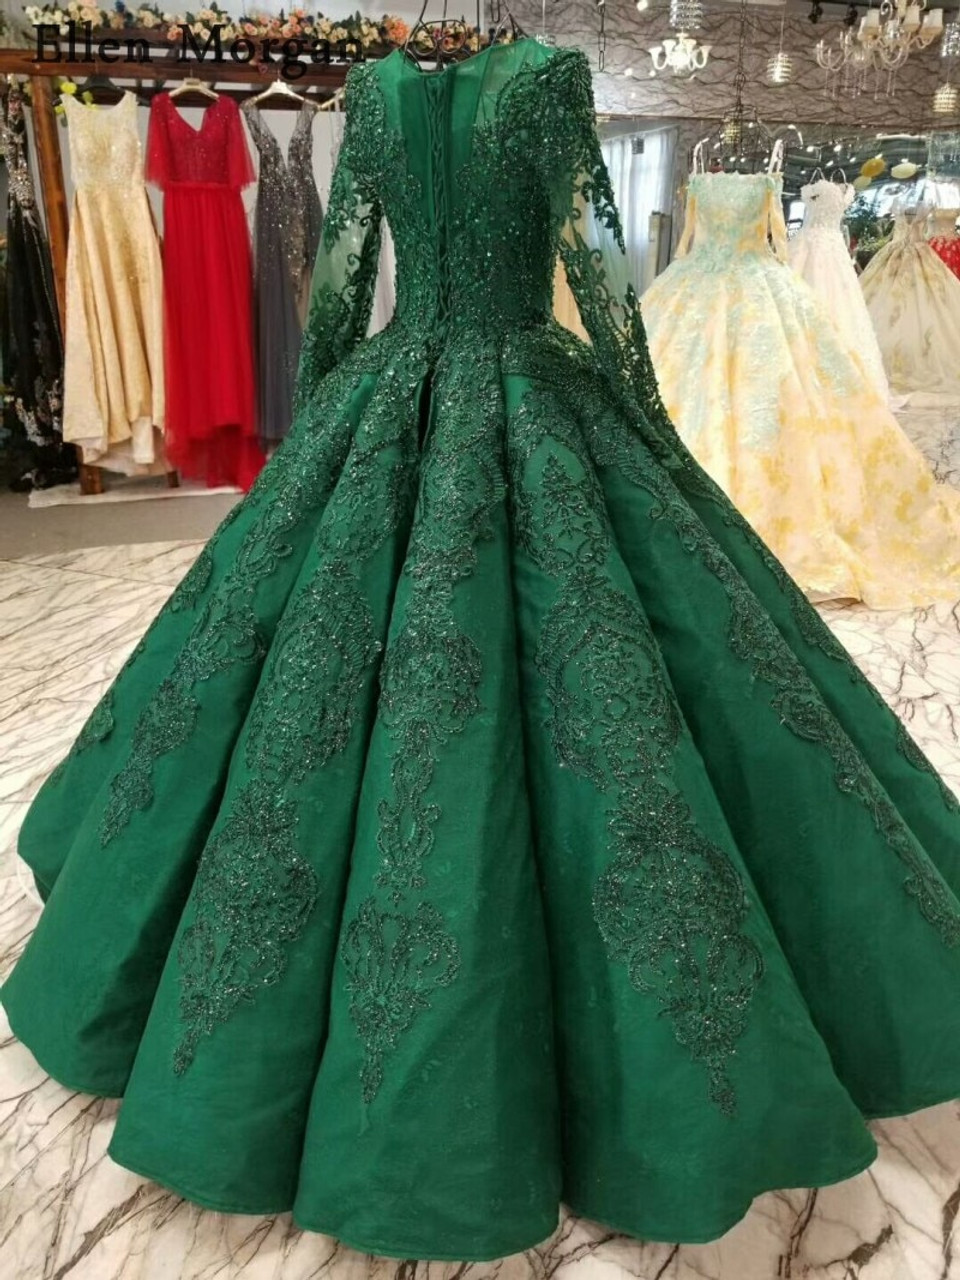 be888c670c9 ... High Quality Green Ball Gowns Wedding Dresses 2018 Saudi Arabian Dubai  Lace up Vintage Long Sleeves ...